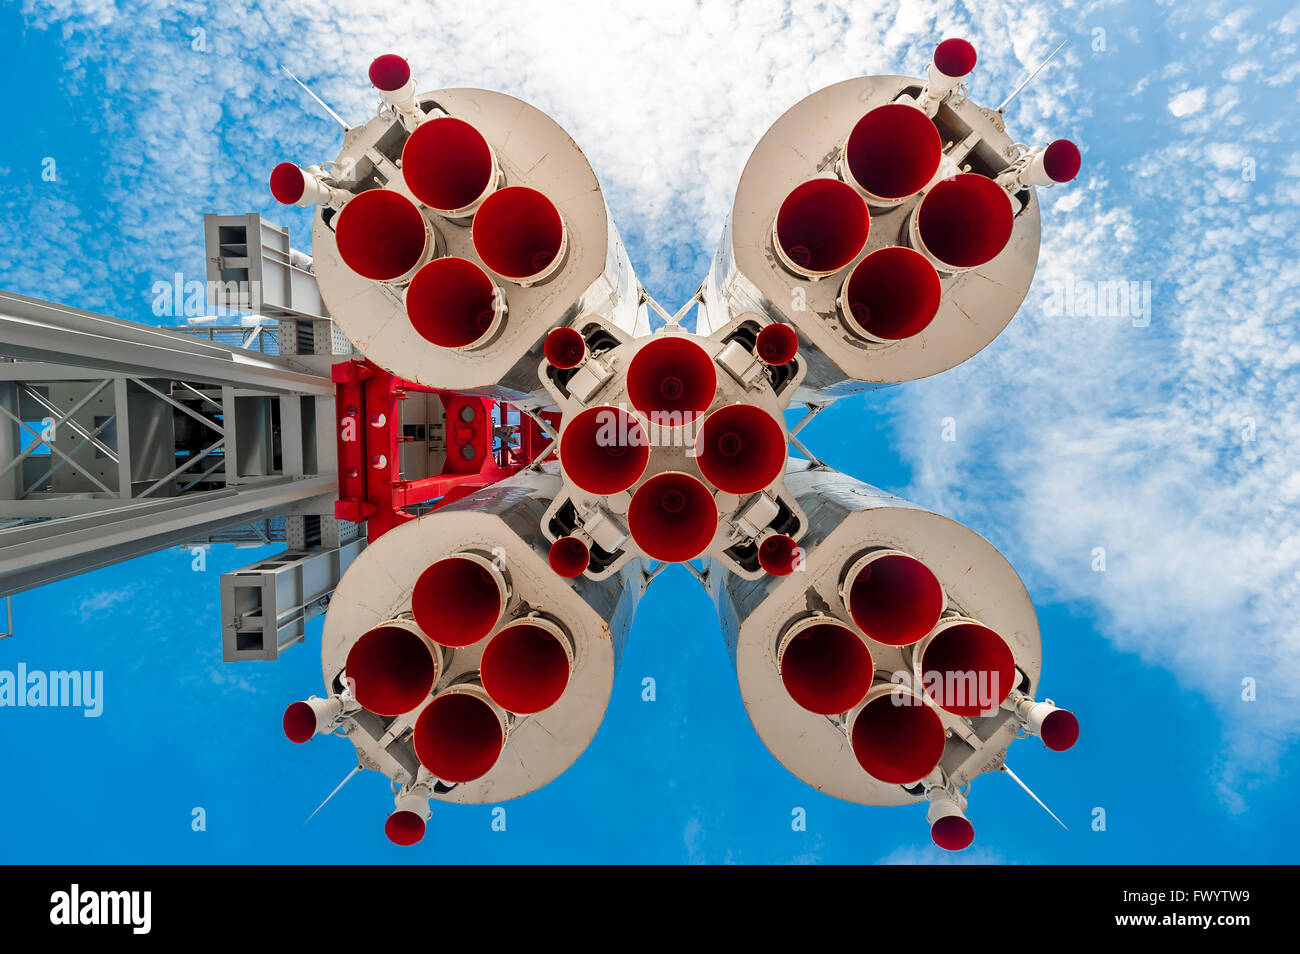 the nozzle large rockets against the blue sky - Stock Image